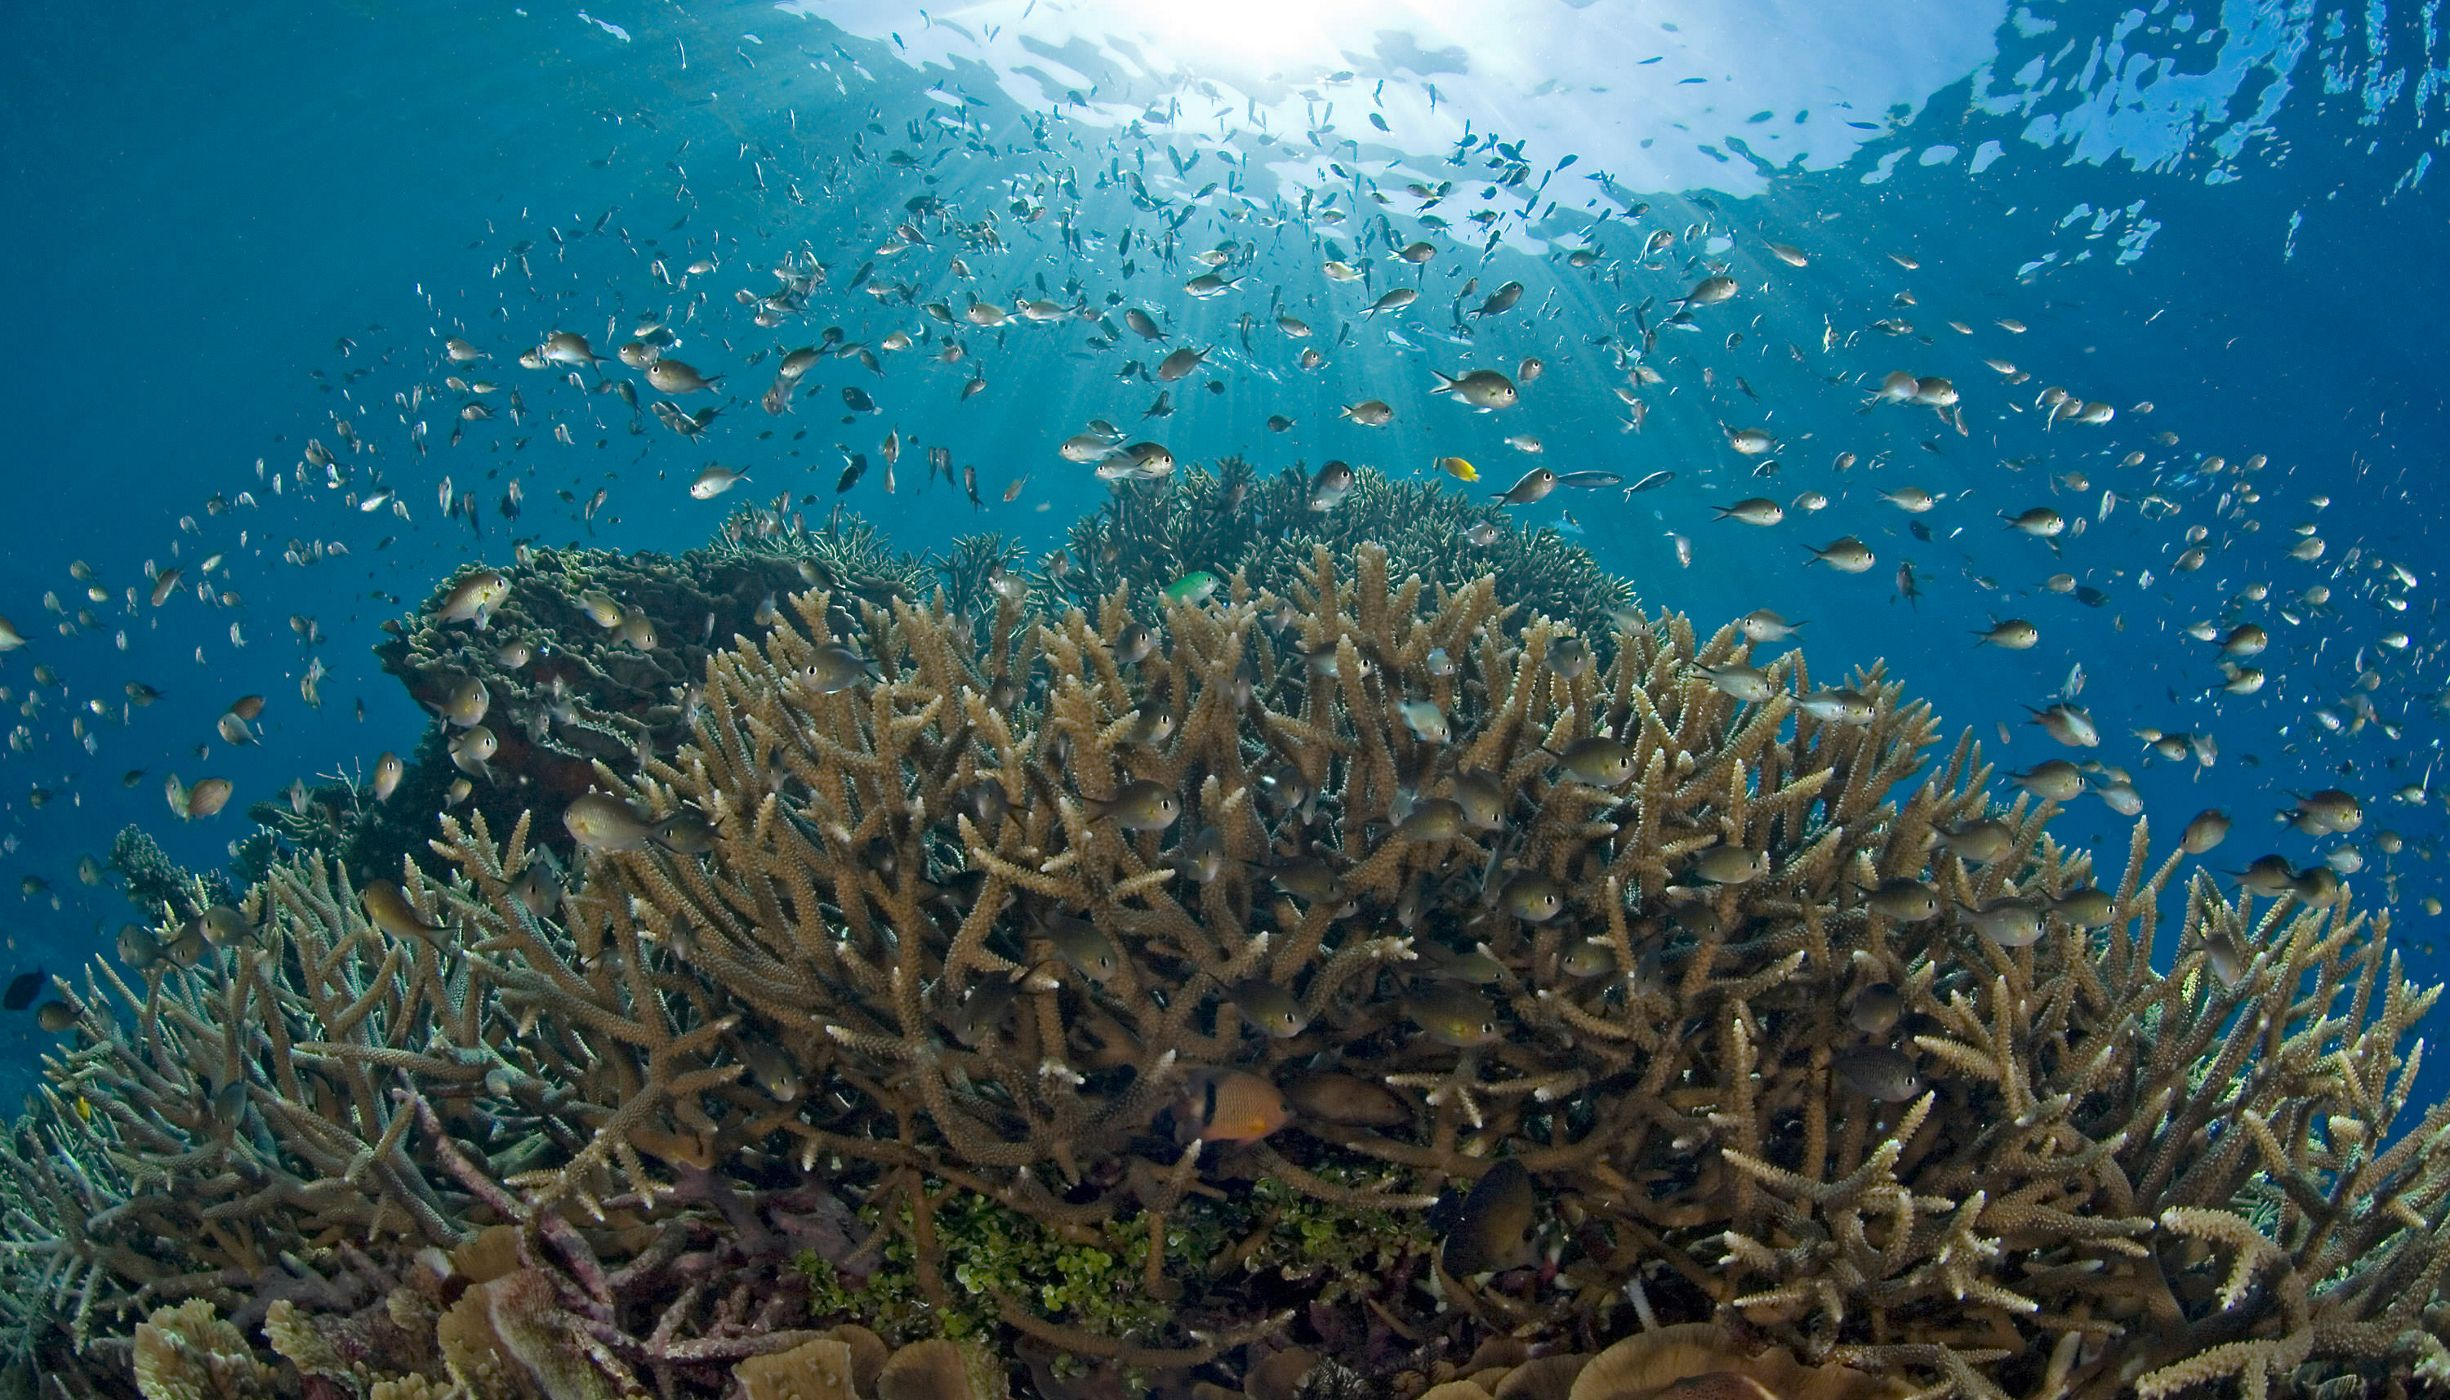 Reef, Damsels, and sunbeams, photographed on coral reefs and waters in the area of the Solomon Islands (a nation in Melanesia, east of Papua New Guinea).